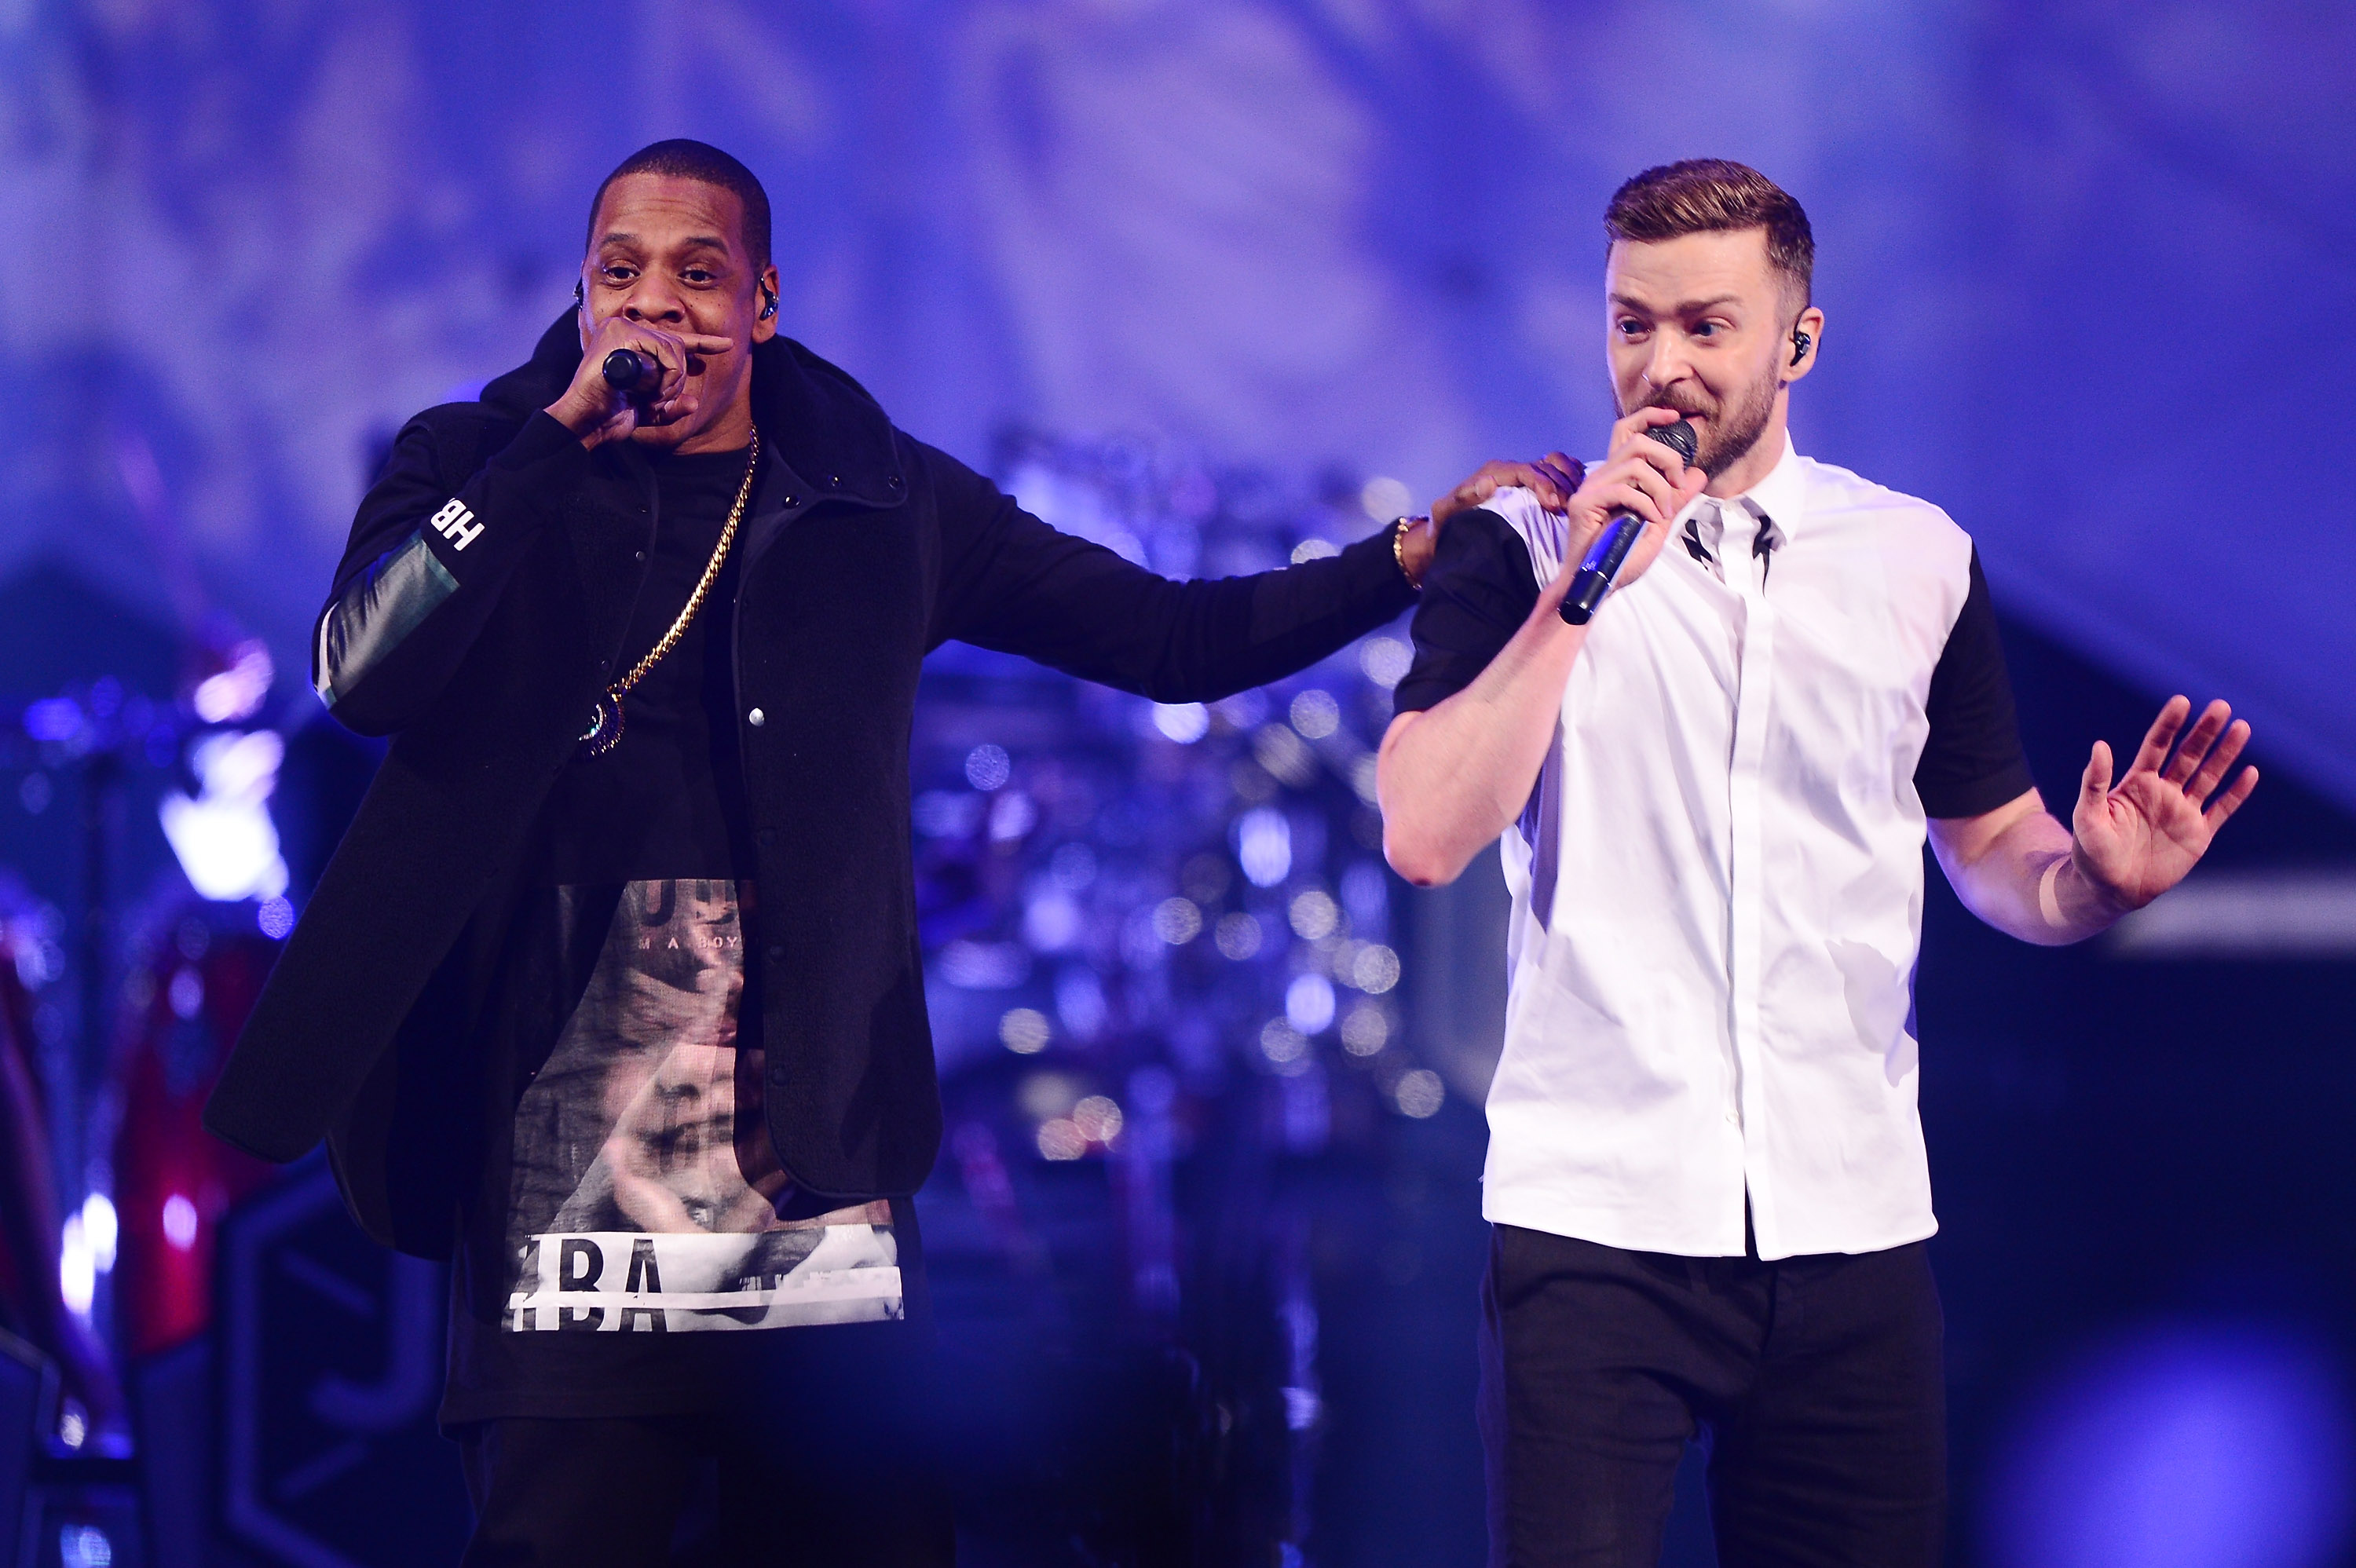 Justin Timberlake In Concert - Brooklyn, NY